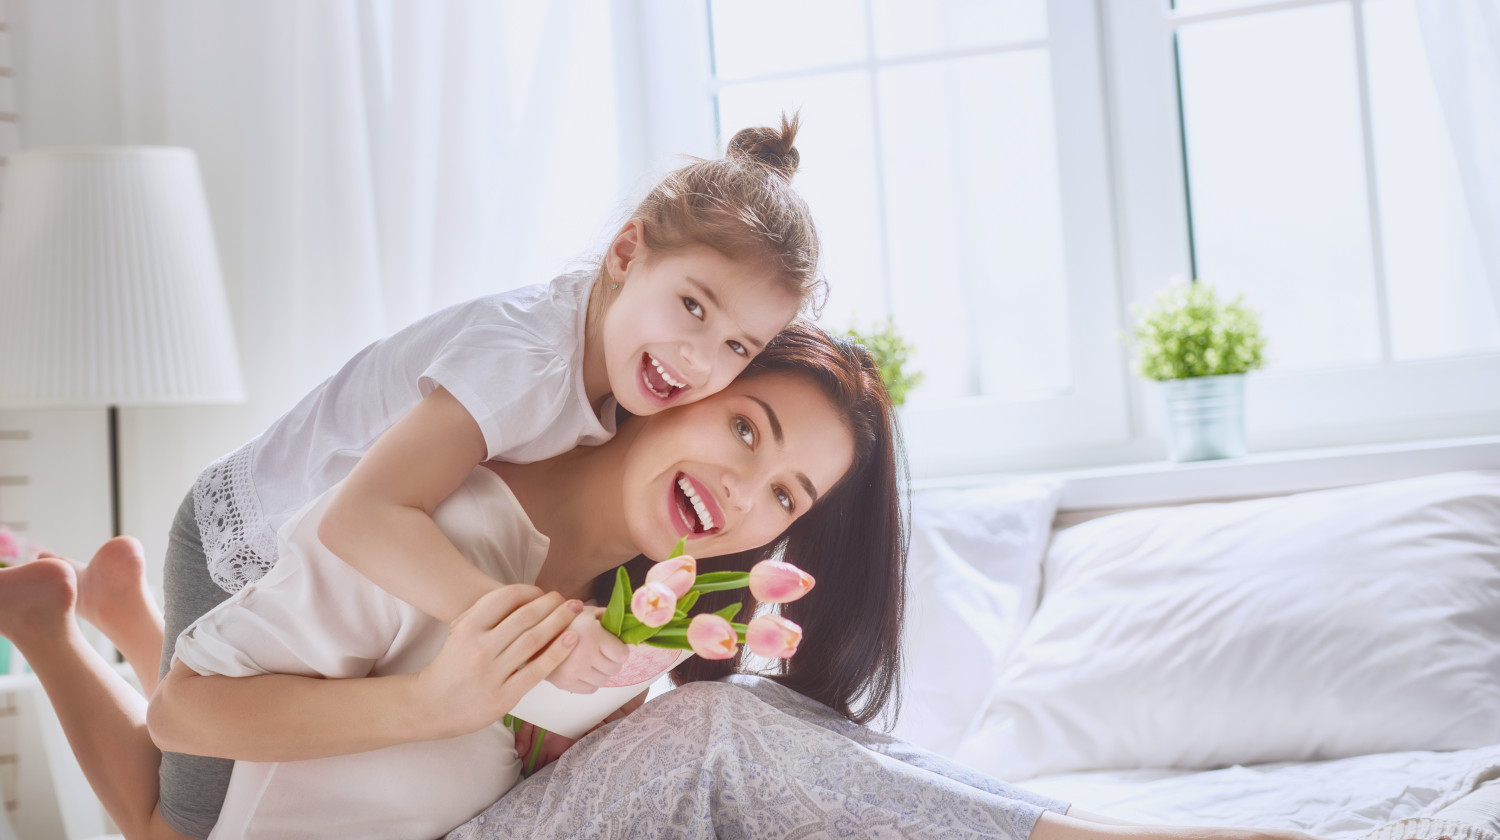 Child daughter congratulates mom and gives her flowers tulips and postcard   Working Moms Tips: Balancing Work and Family   full time working mom   Featured